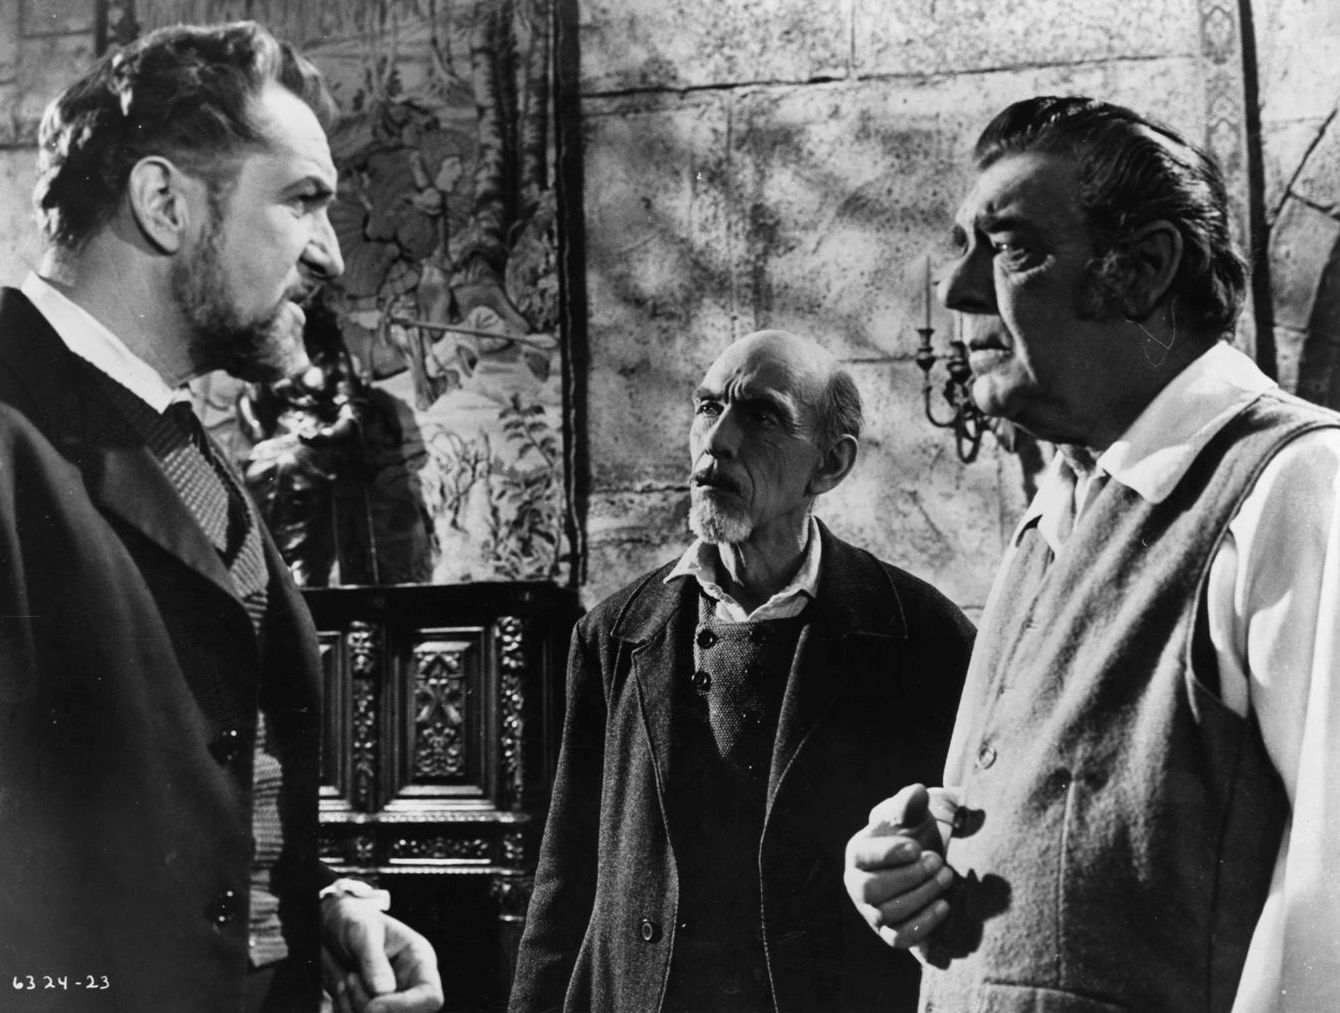 Vincent Price, John Dierkes, Lon Chaney Jr in The Haunted Palace (1963)